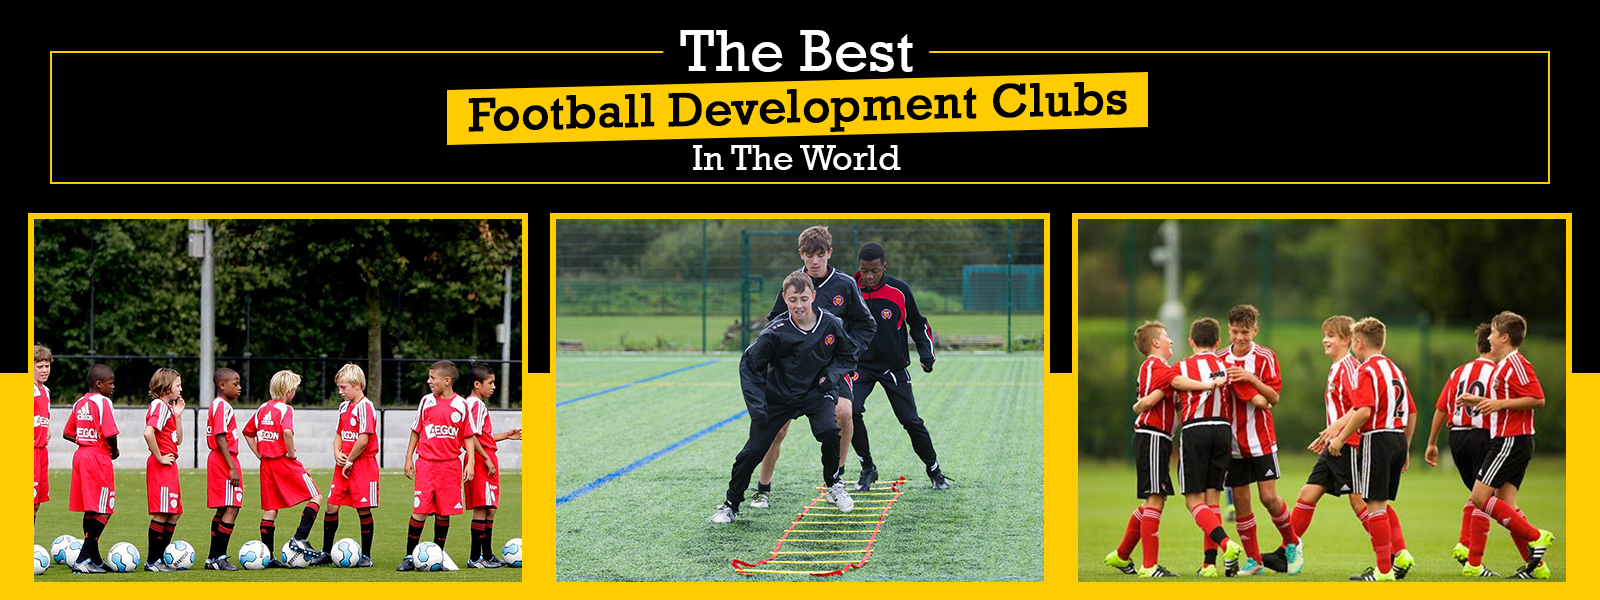 Top Football Development Clubs In The World